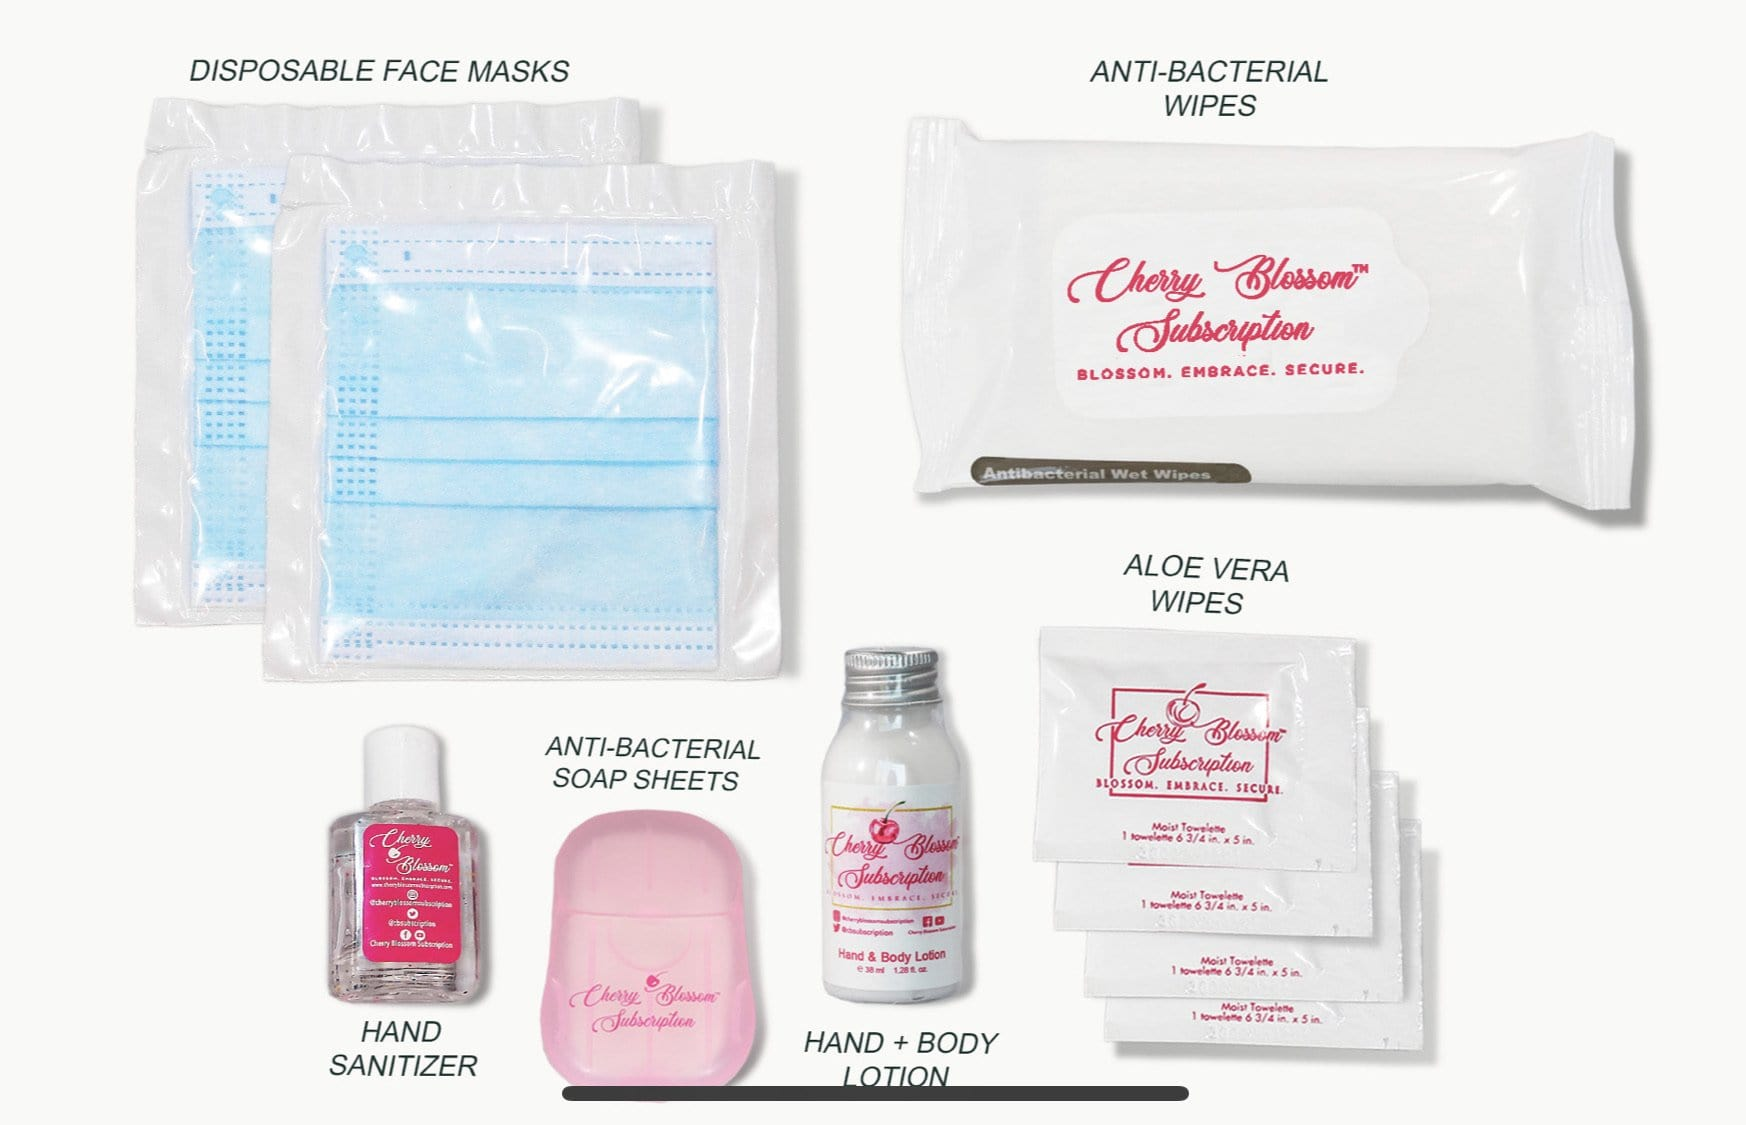 Travel Sanitizer Care Kit For Her - Cherry Blossom Subscription